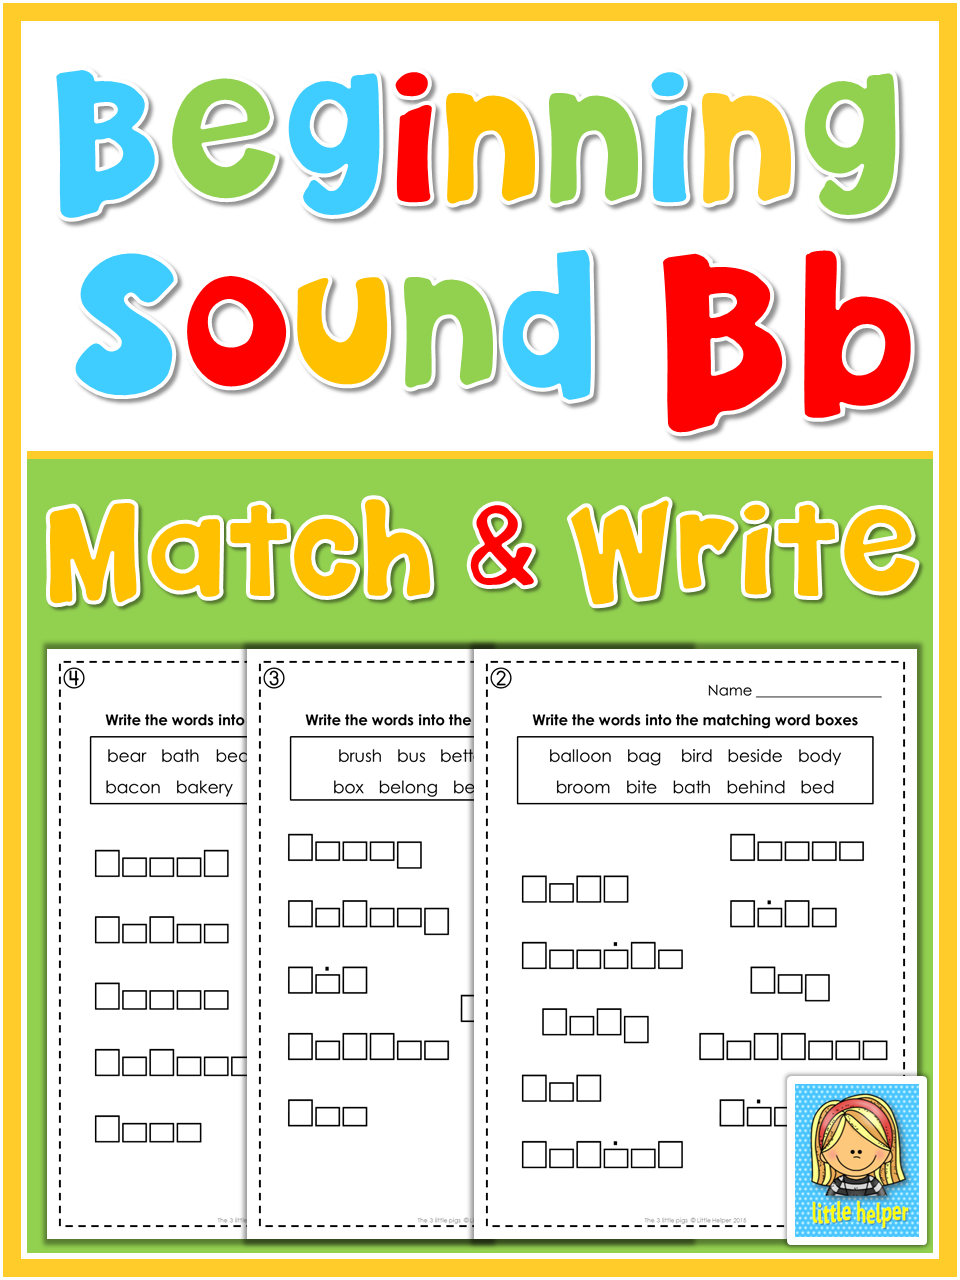 Letter B B Writing And Spelling Fun For Beginning Writers Students Have To Find The Matching Letterbox Shape For Each Spelling Fun Beginning Sounds Word Boxes